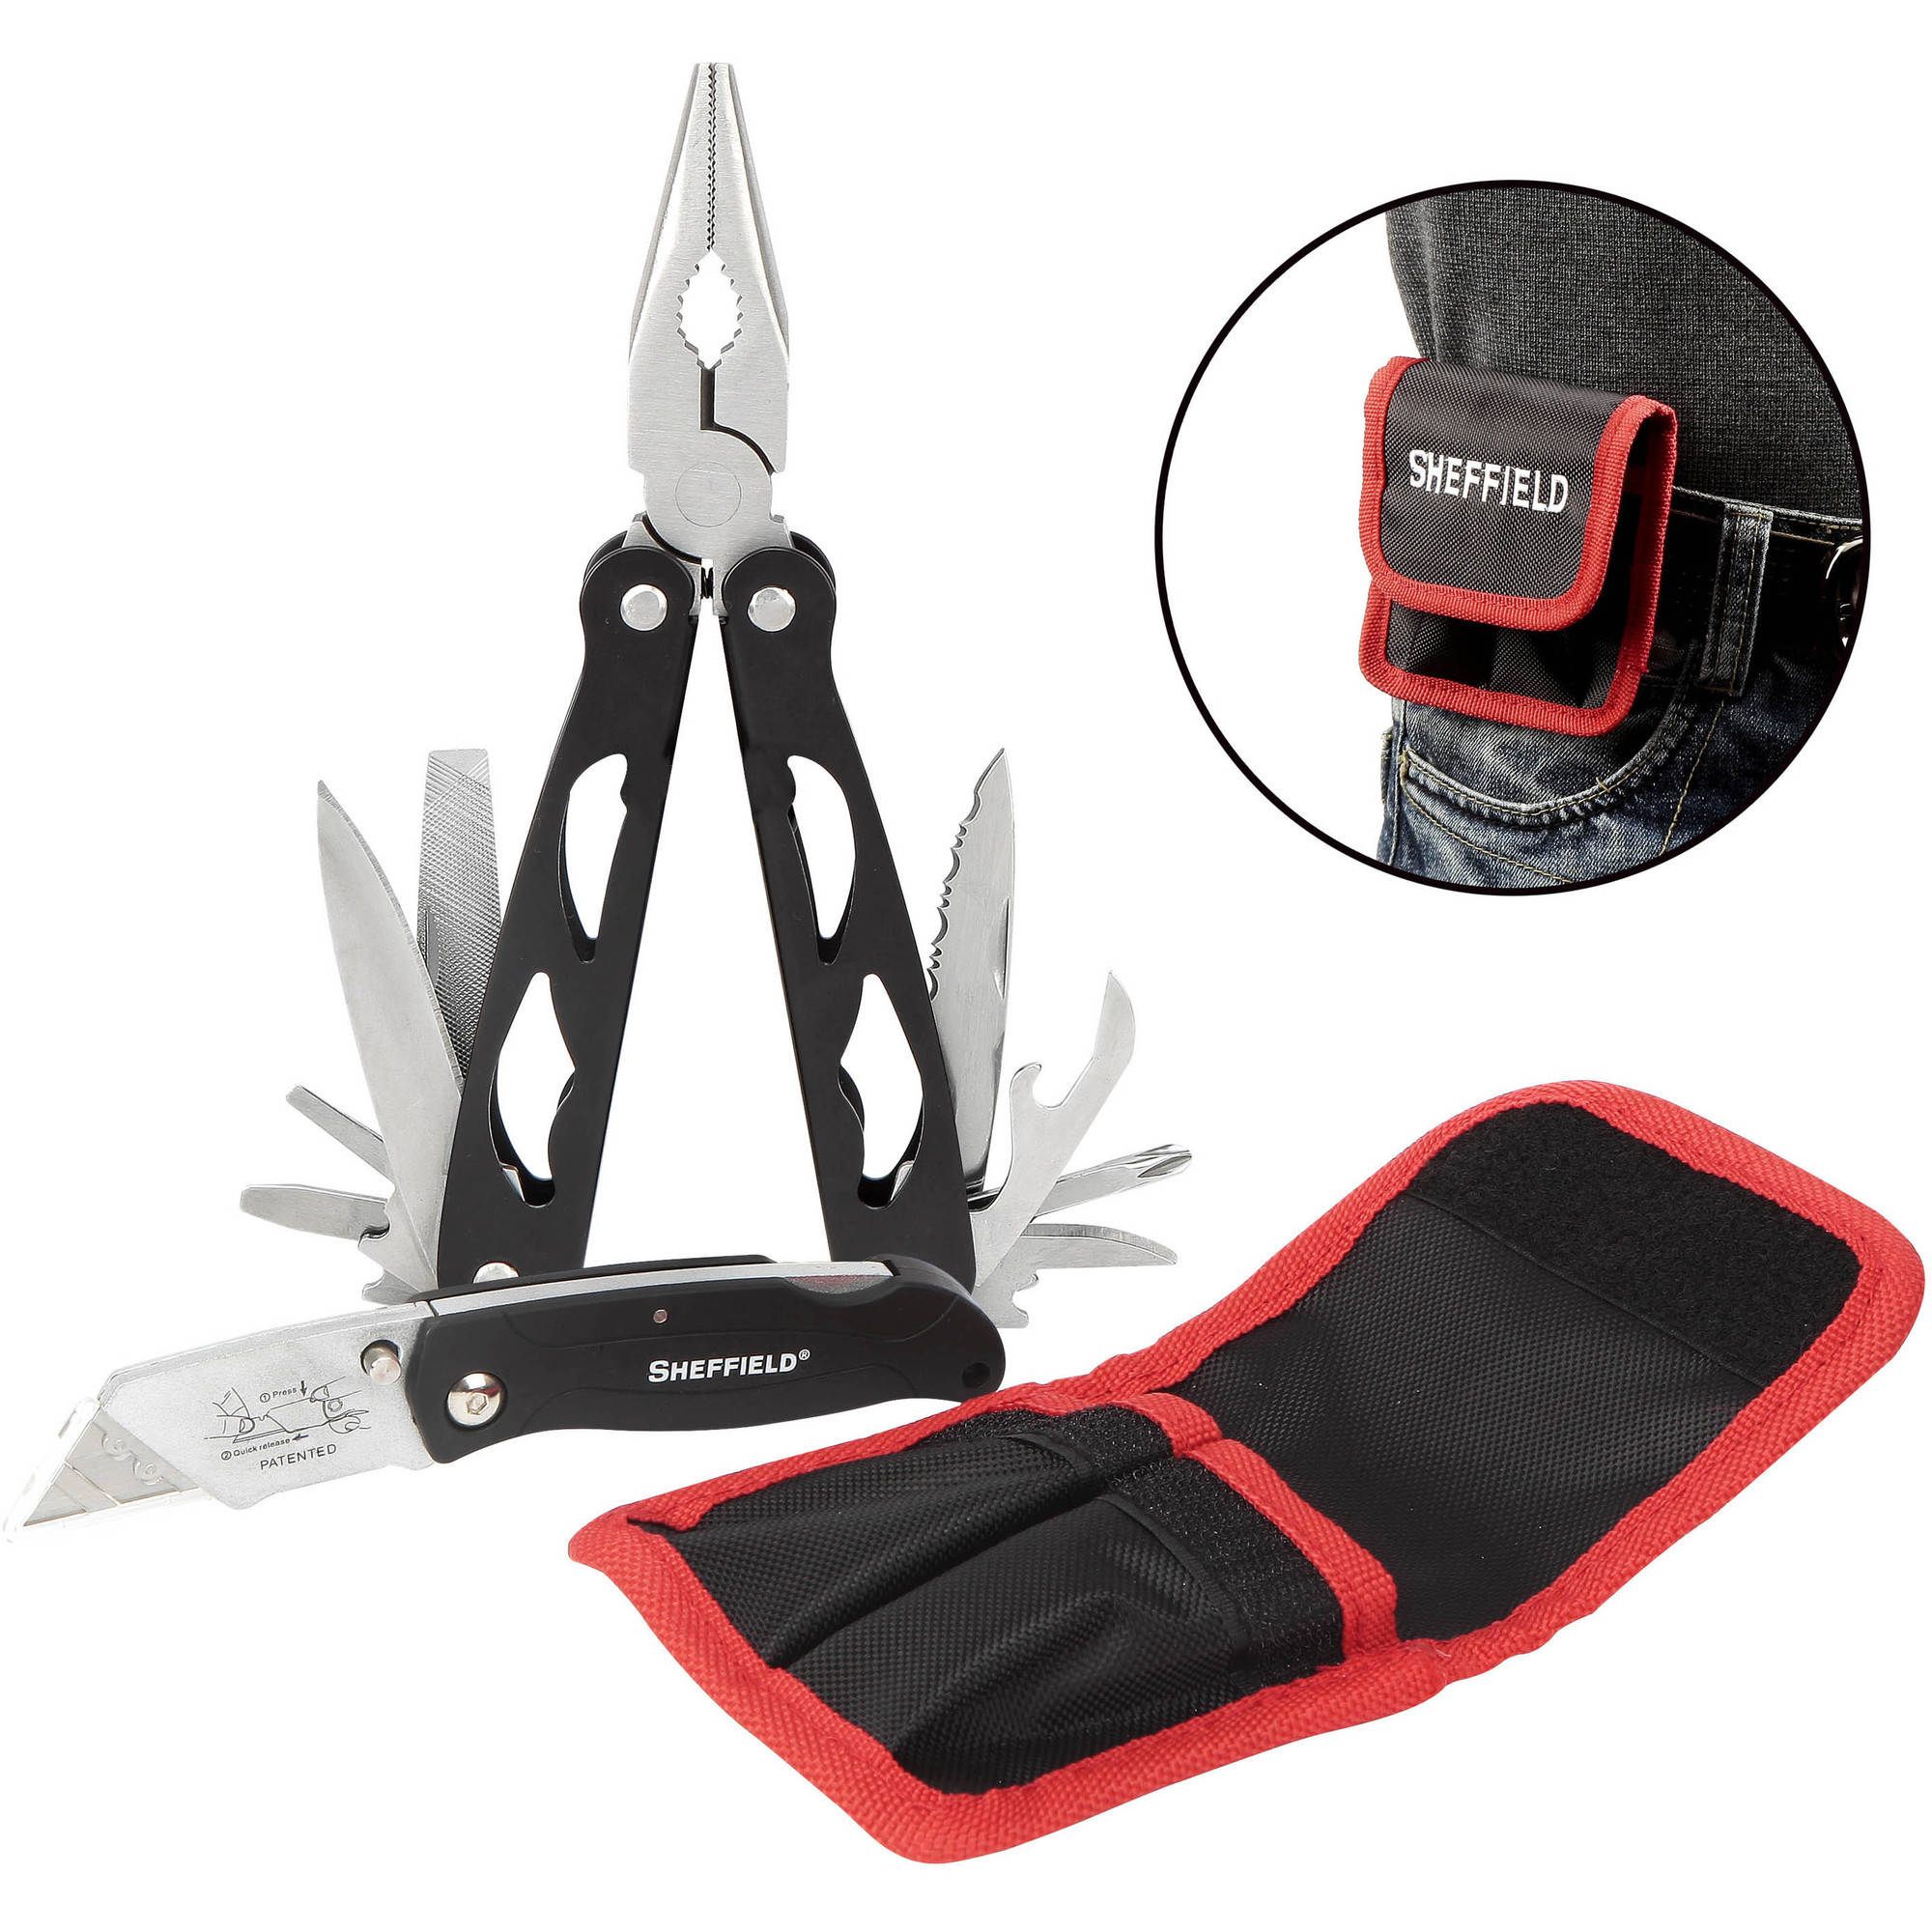 Sheffield 2-Piece Multi Tool and Lockback Knife Set